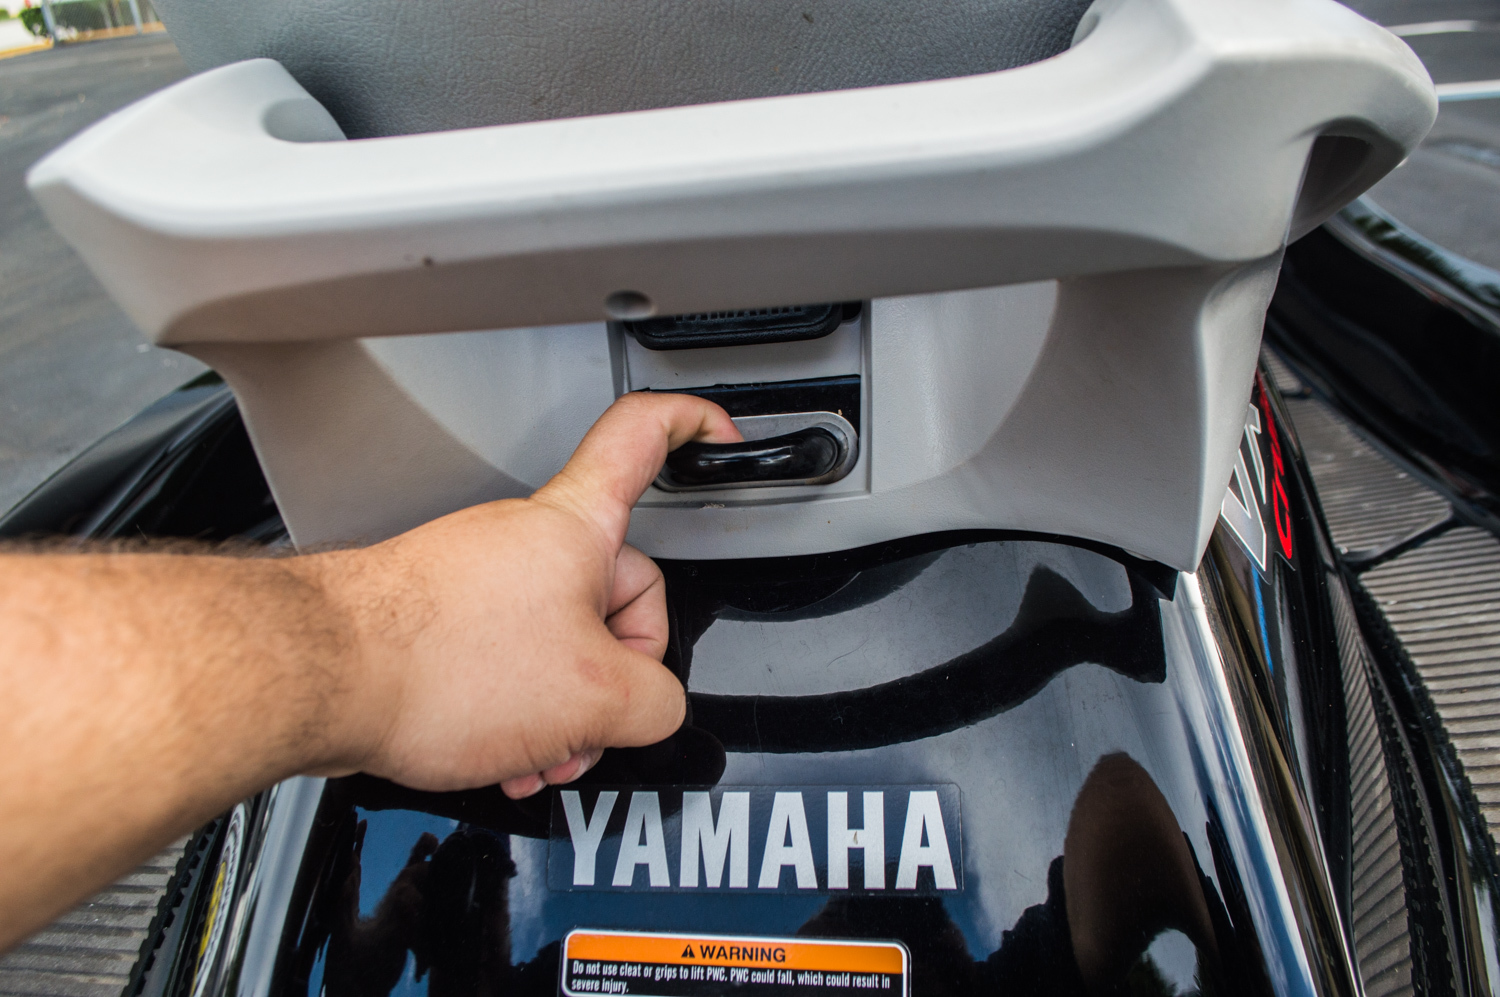 Thumbnail 5 for Used 2007 Yamaha VX Cruiser boat for sale in West Palm Beach, FL